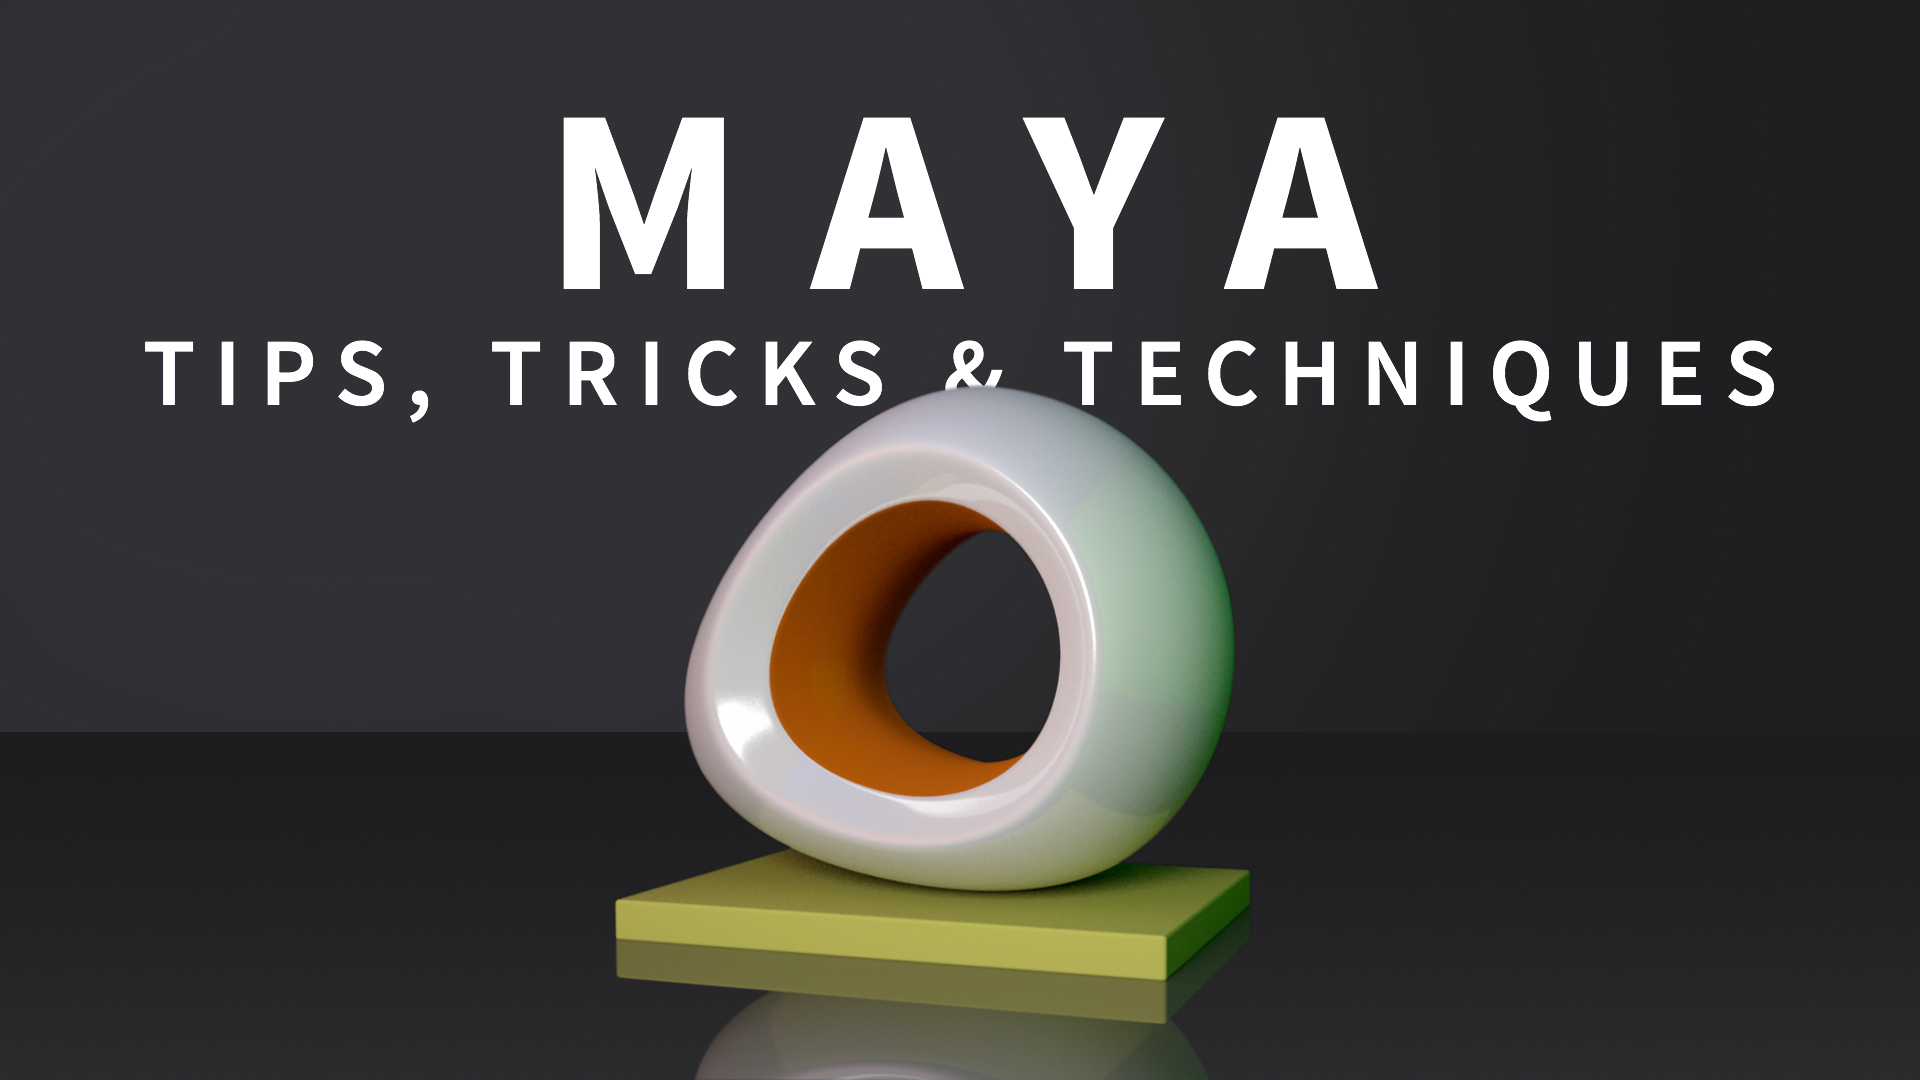 Get the best quality out of Arnold renders: Maya: Tips, Tricks, & Techniques